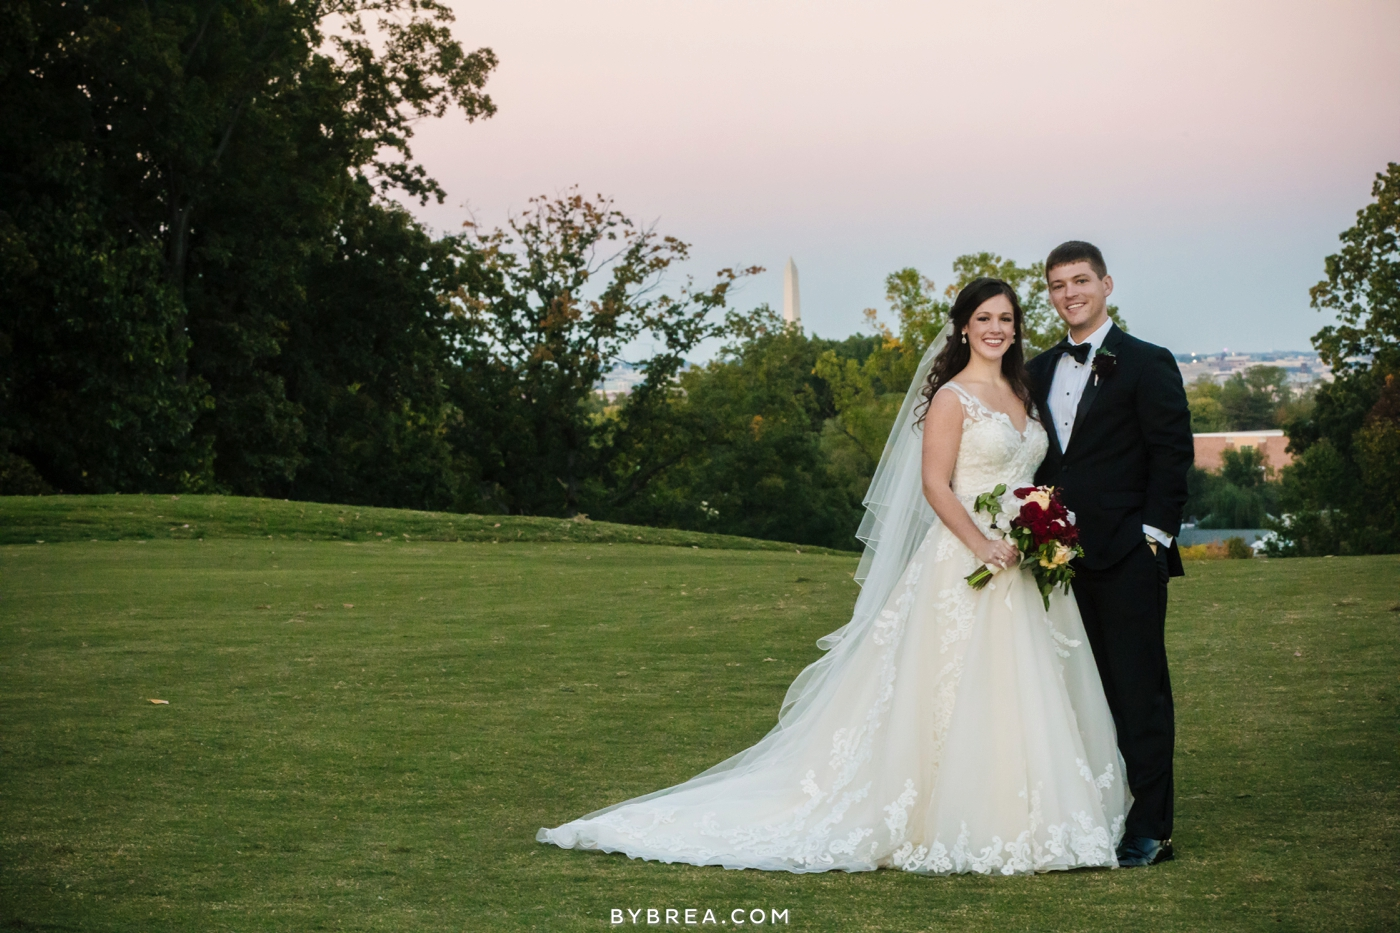 Bride and groom on green lawn with Washington monument